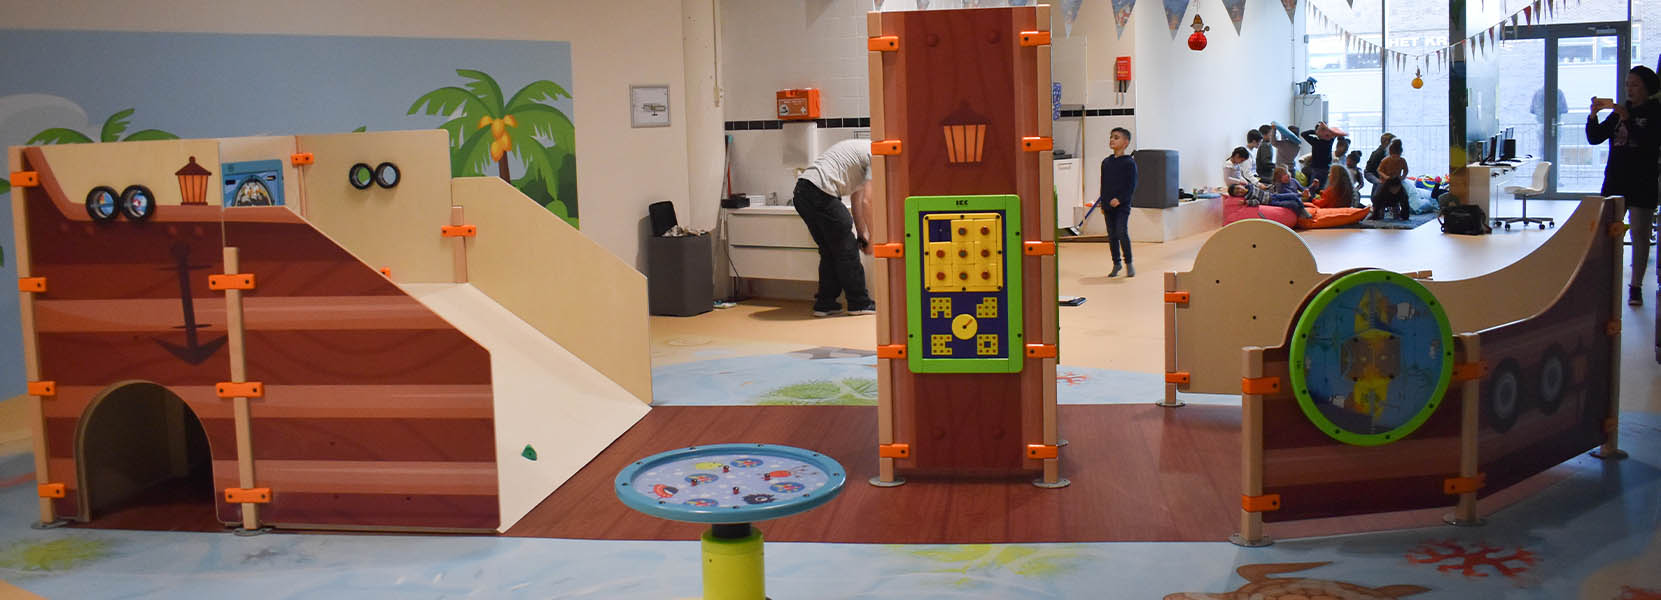 On this image you can see the play corner Ship ahoy in a daycare centre